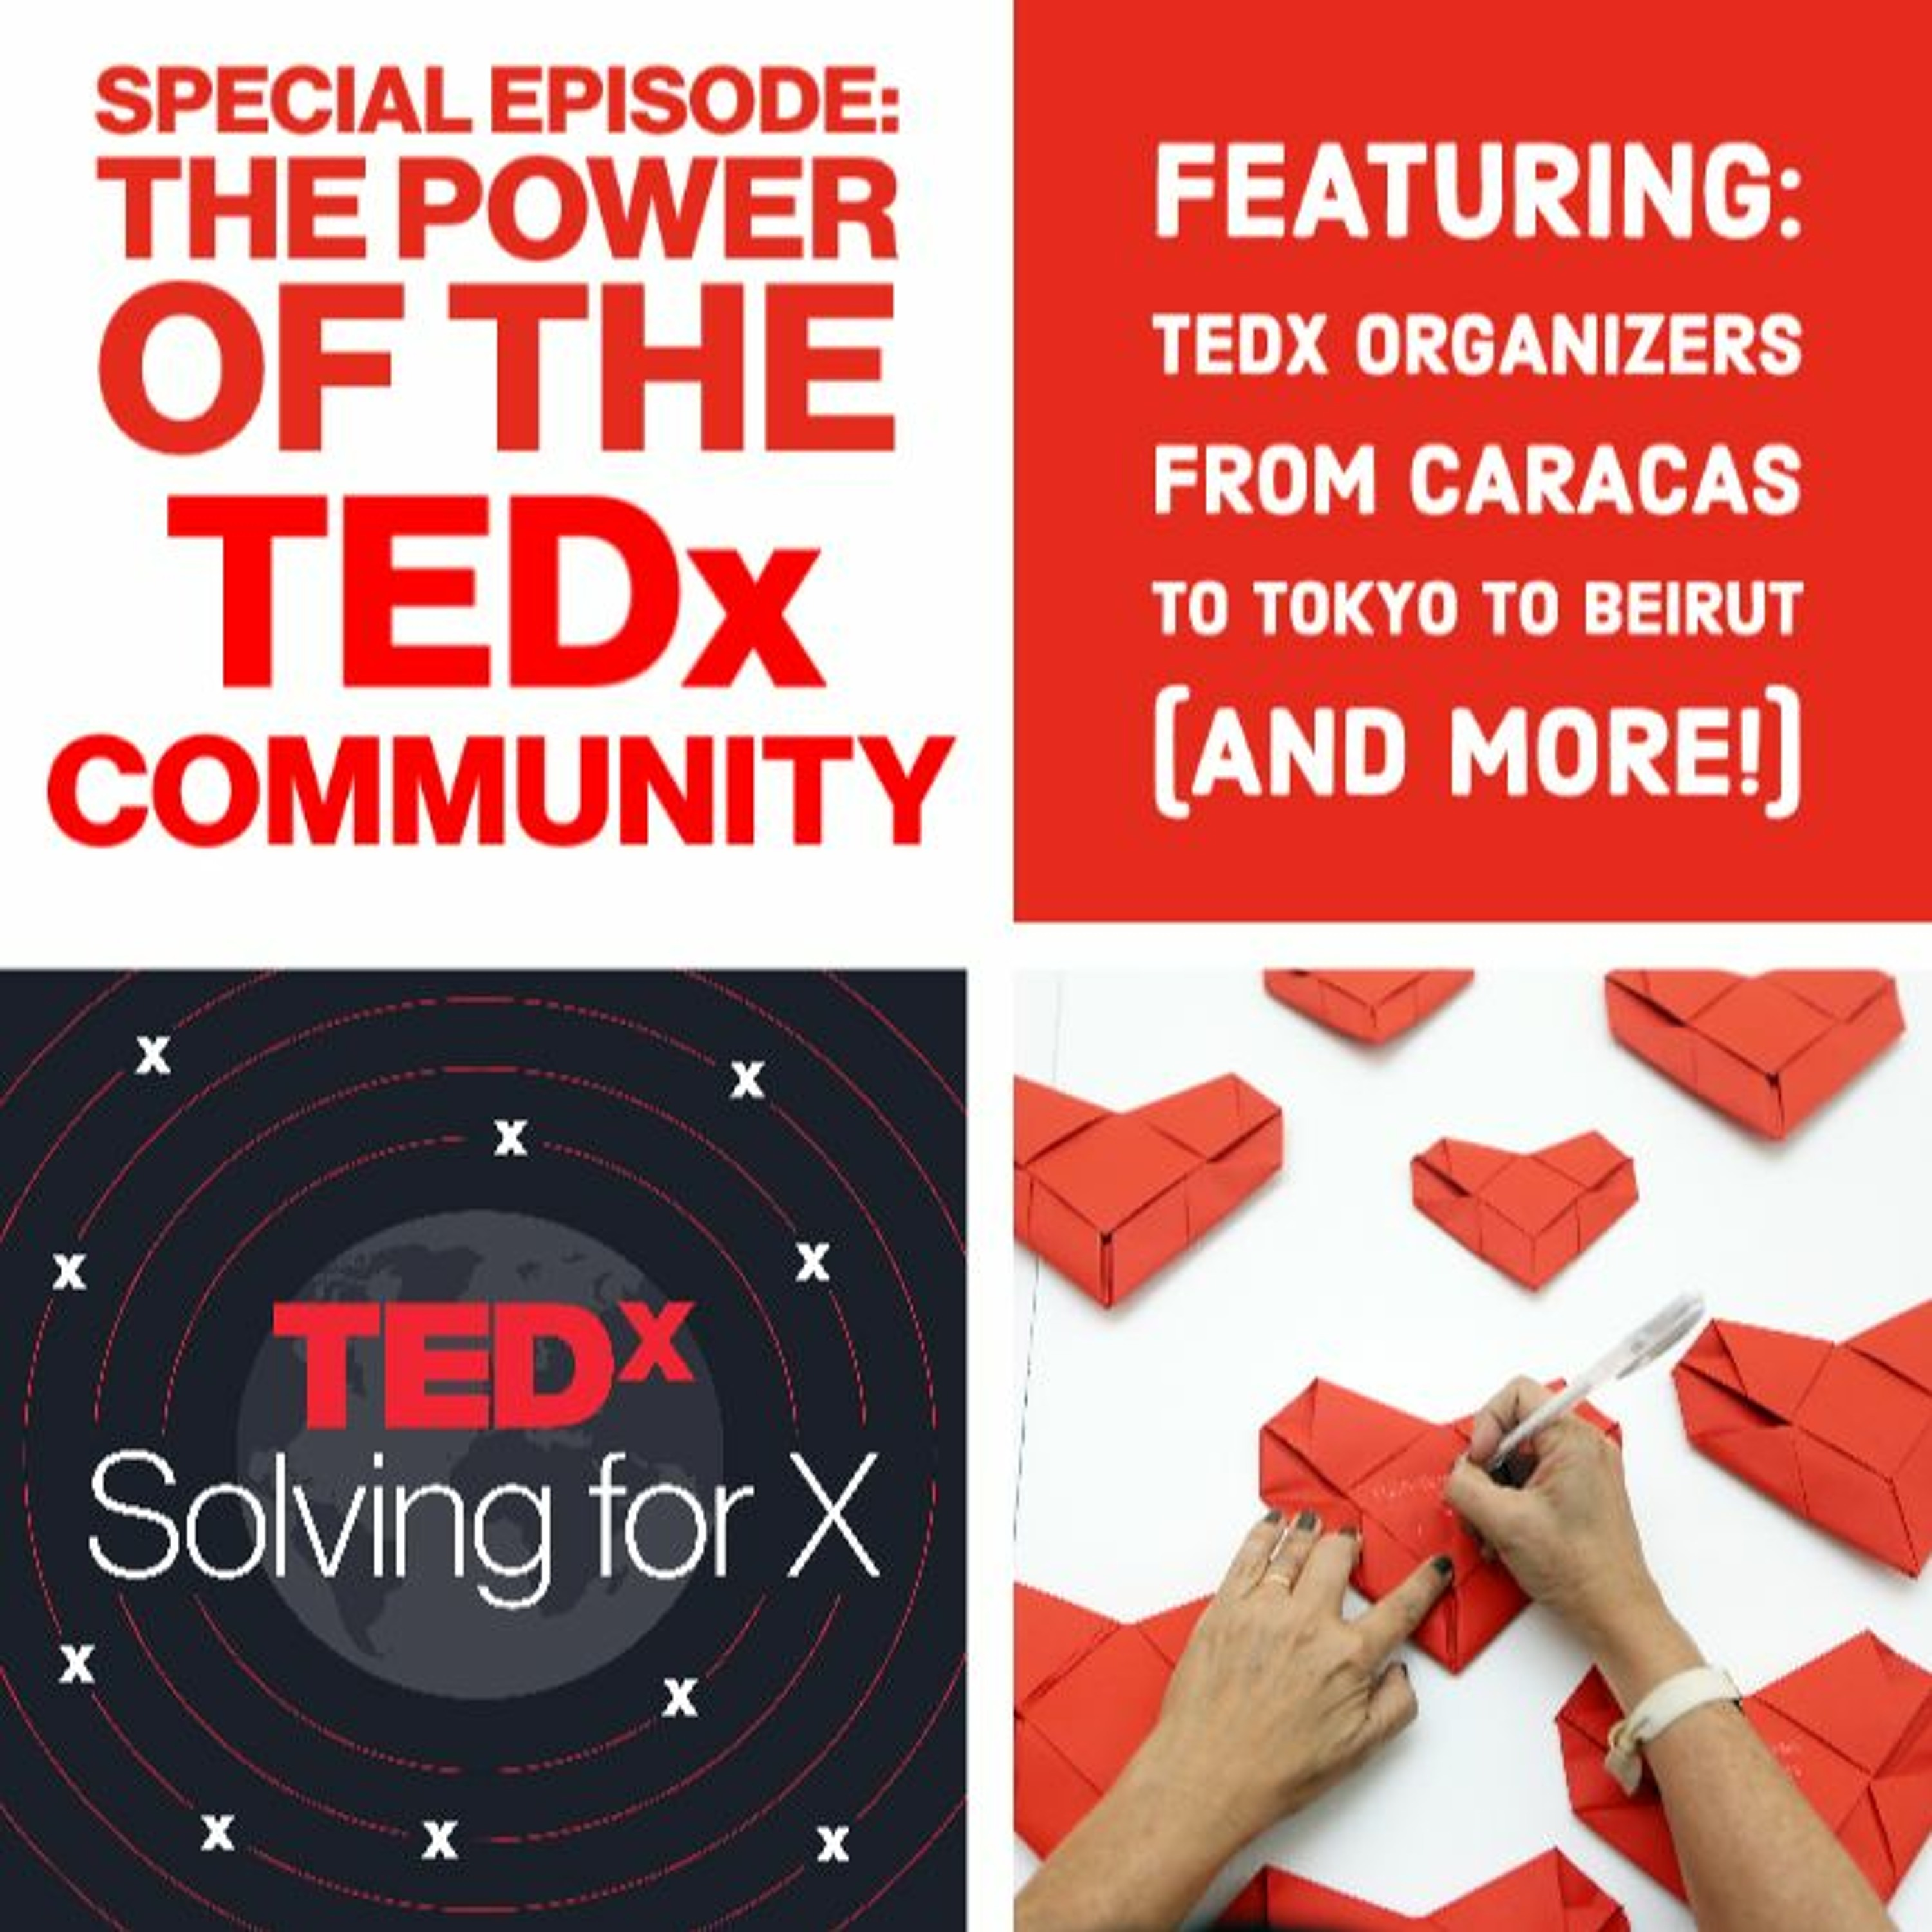 The power of the TEDx community — TEDx organizers